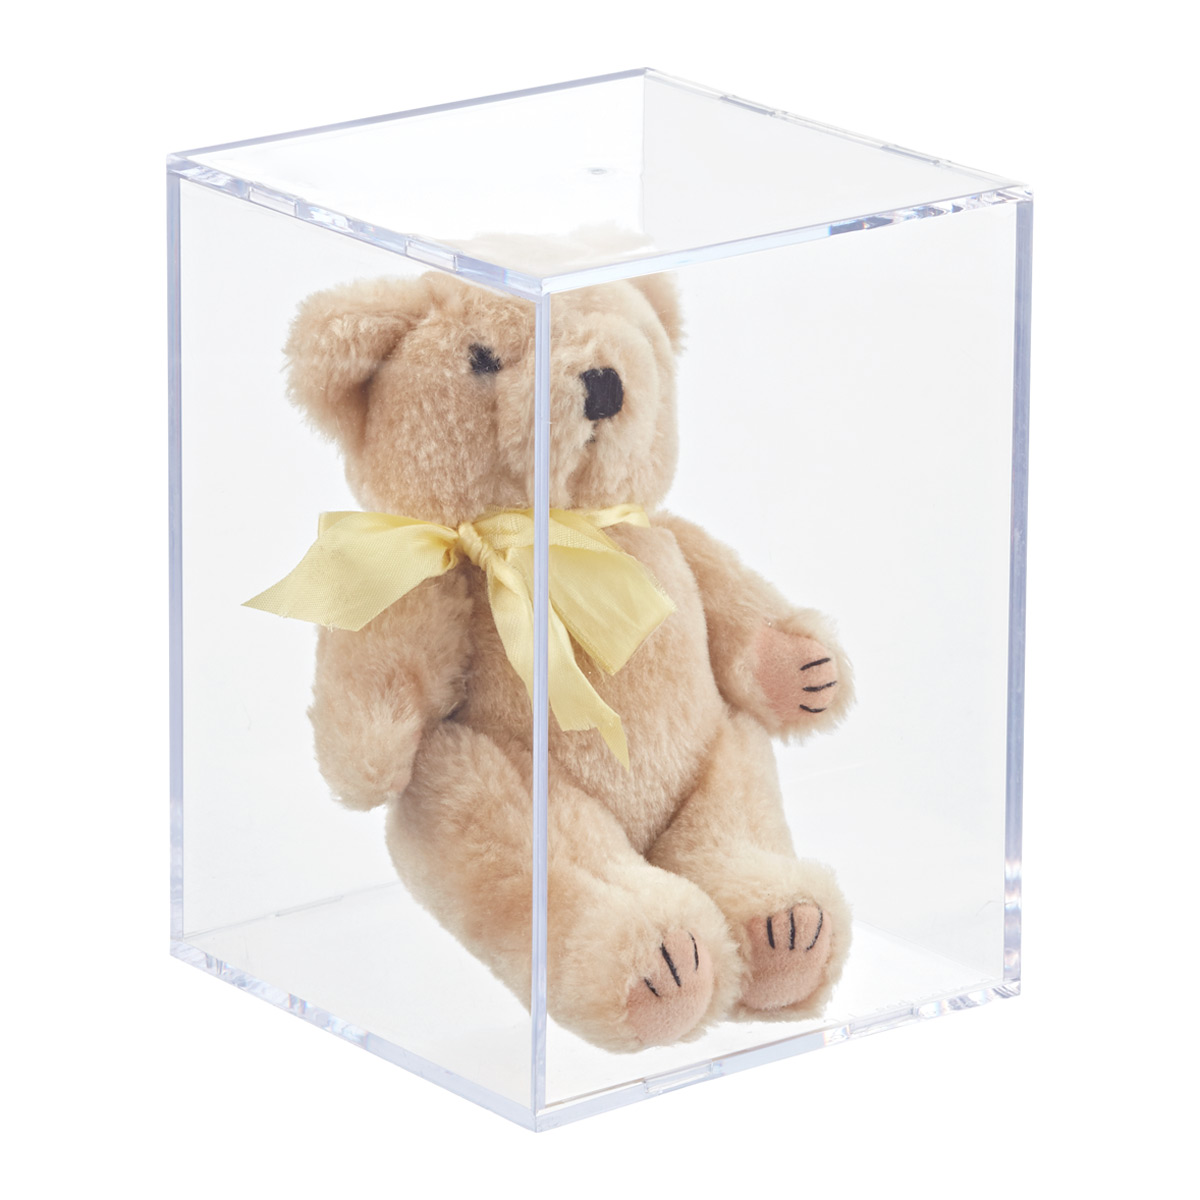 Ballqube Plush Toy Display Cube